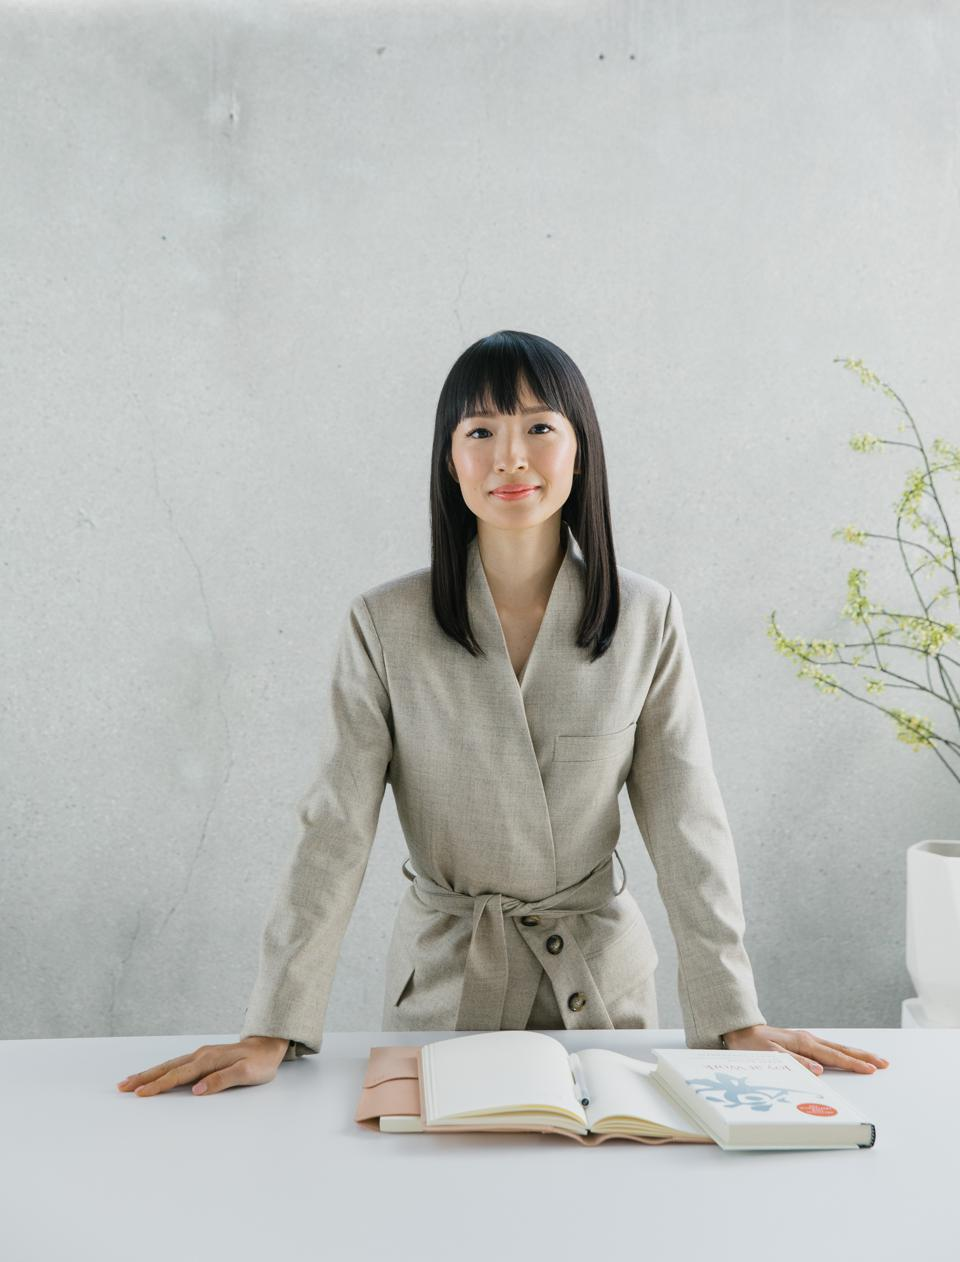 Marie Kondo shows how to tidy up for joy and success in 2021.